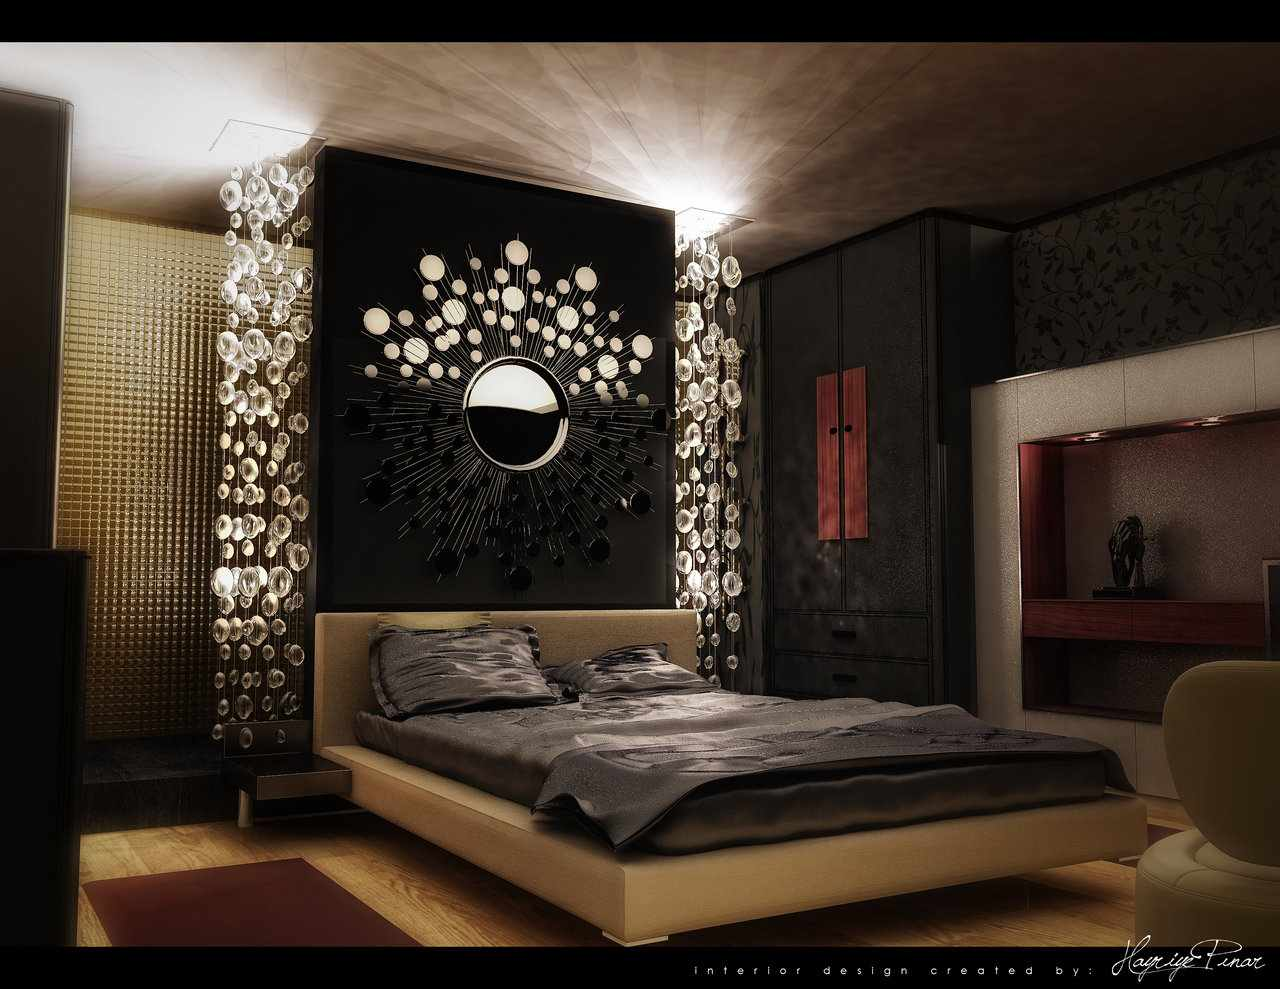 Bedroom Layout Ideas Of Ikea Bedroom Ideas Ikea Bedroom 2014 Ideas Room Design